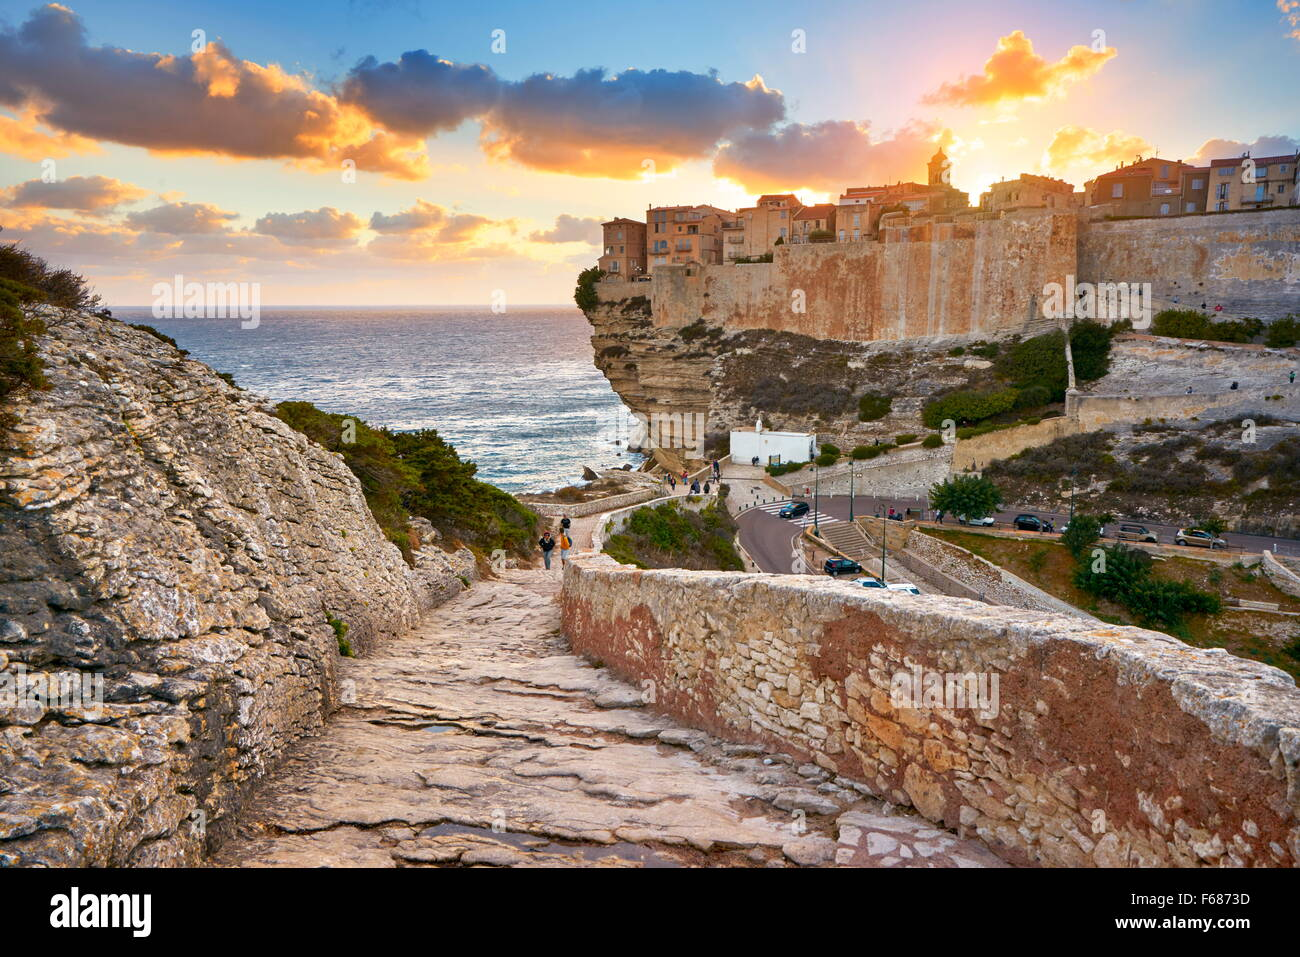 Corsica Island -  Bonifacio at sunset time, France - Stock Image